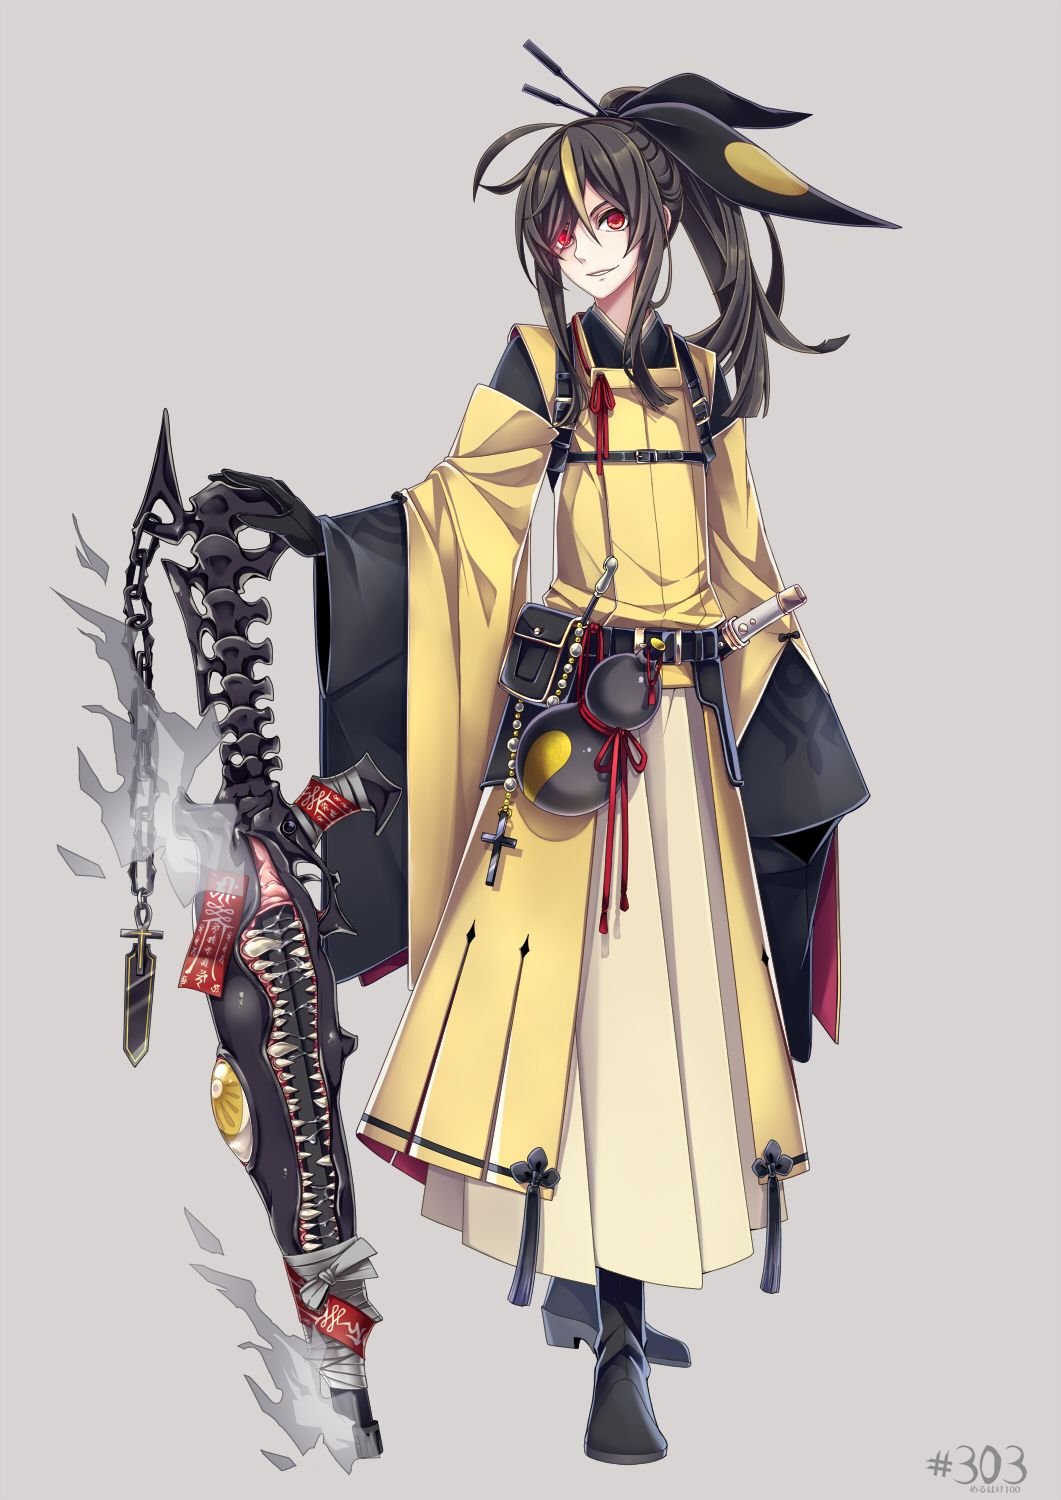 1boy arm_at_side bandages beads belt belt_pouch black_boots black_gloves black_hair black_ribbon boots chain cross fanny_pack fire full_body gloves gourd grey_background hair_between_eyes hair_ornament hair_stick hakama highres holding_weapon japanese_clothes kiseru long_hair looking_at_viewer male_focus mawile merlusa multicolored_hair number ofuda personification pipe pokemon pokemon_(game) ponytail red_eyes ribbon saliva sharp_teeth simple_background smile smoking_pipe solo spine…